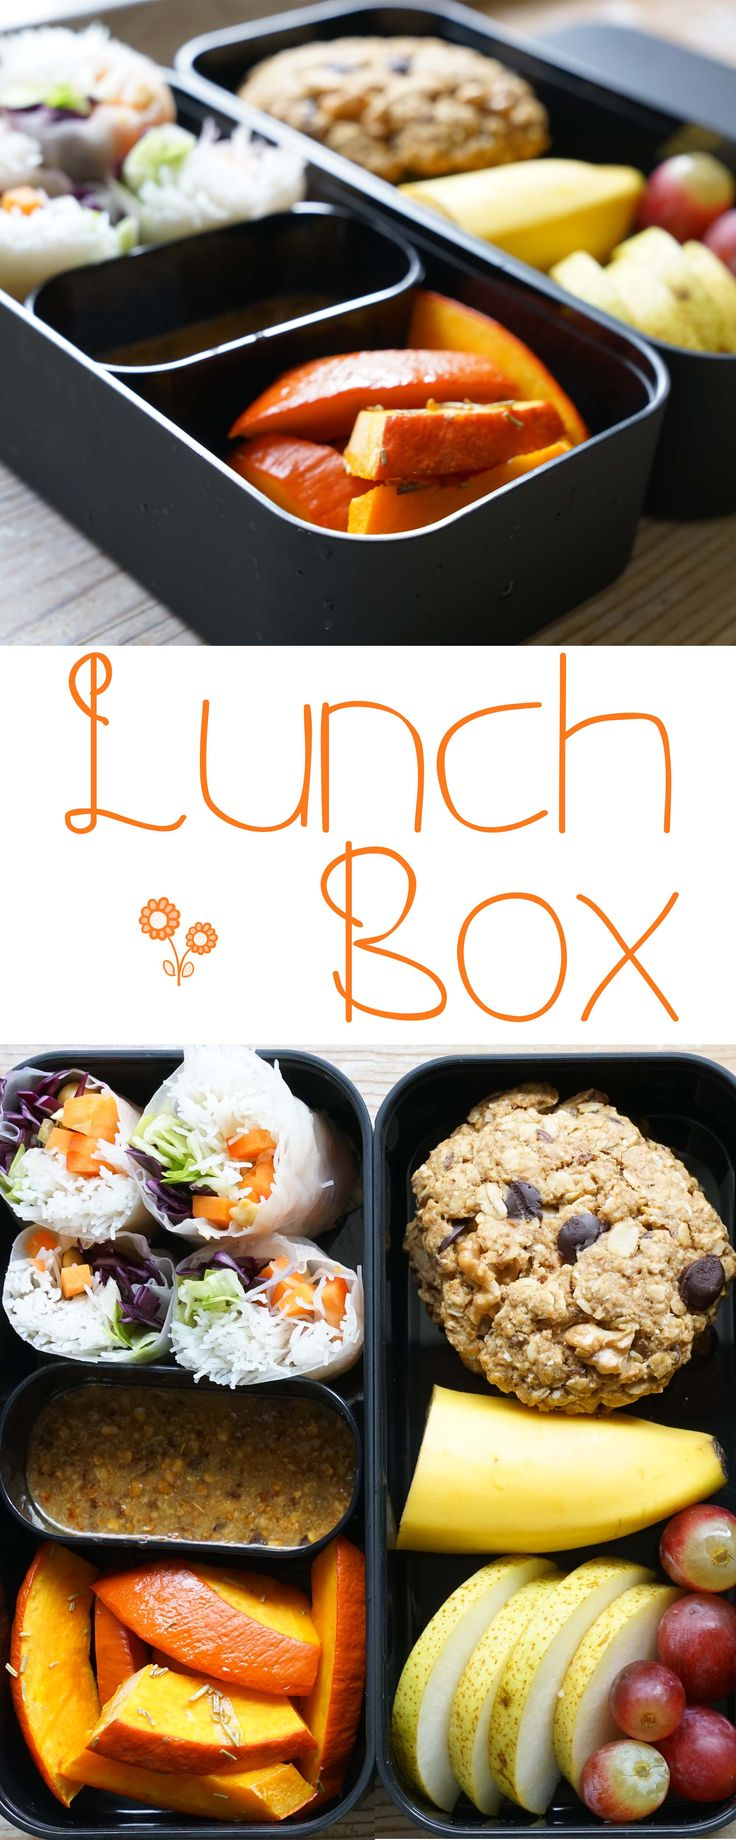 best 25 bento lunchbox ideas on pinterest lunch box meals bento kids and bento box for kids. Black Bedroom Furniture Sets. Home Design Ideas